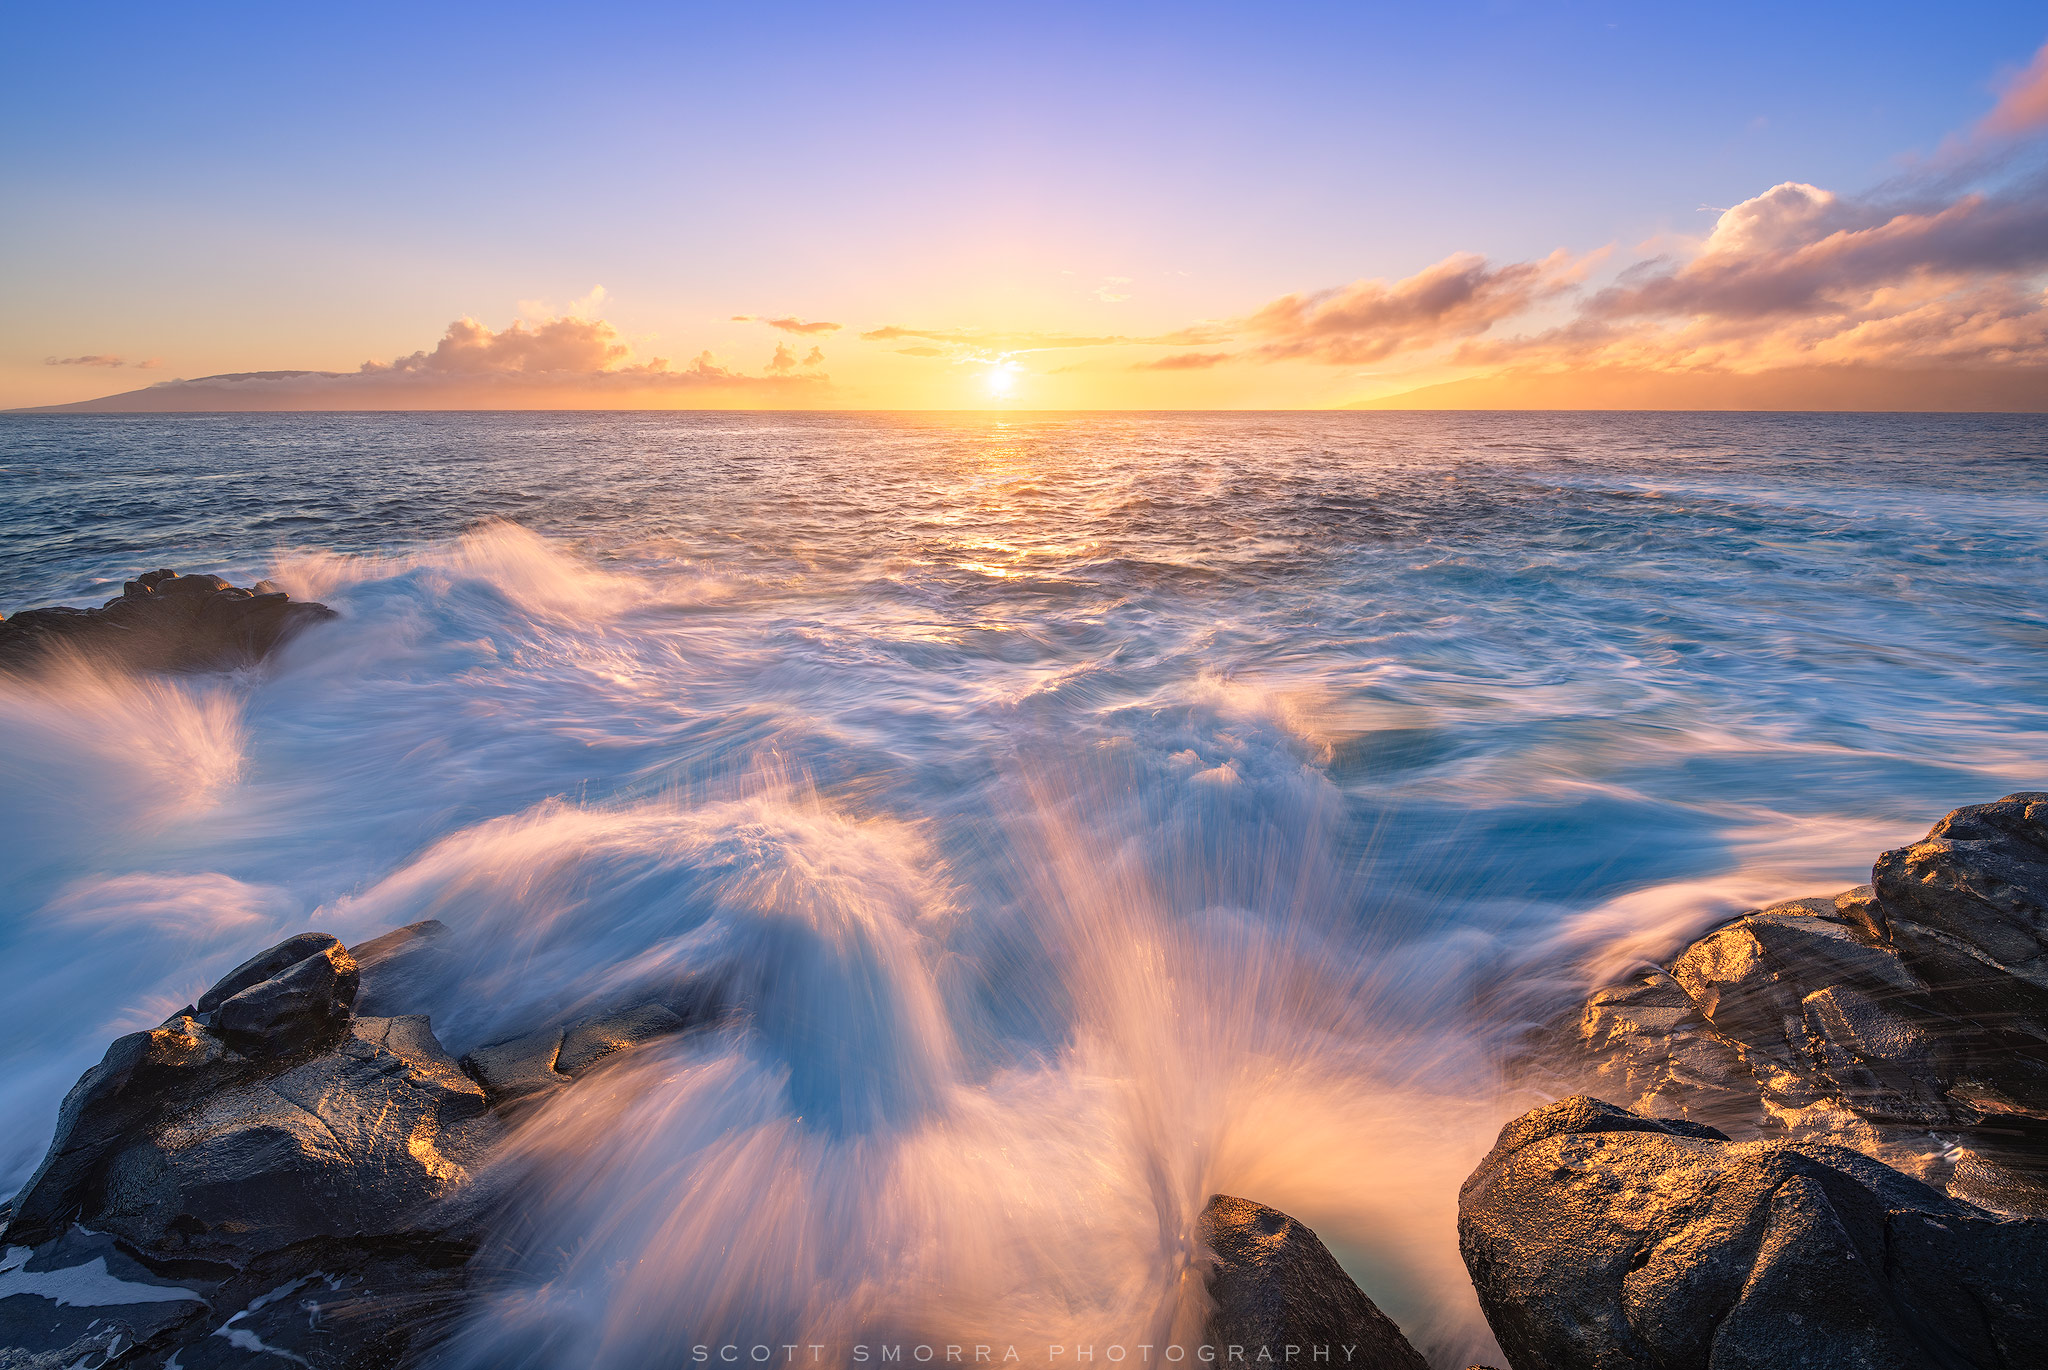 Hawaii, Maui, Kapalua, sunset, light, waves, ocean, swell, splash, Lanai, Molokai,, photo